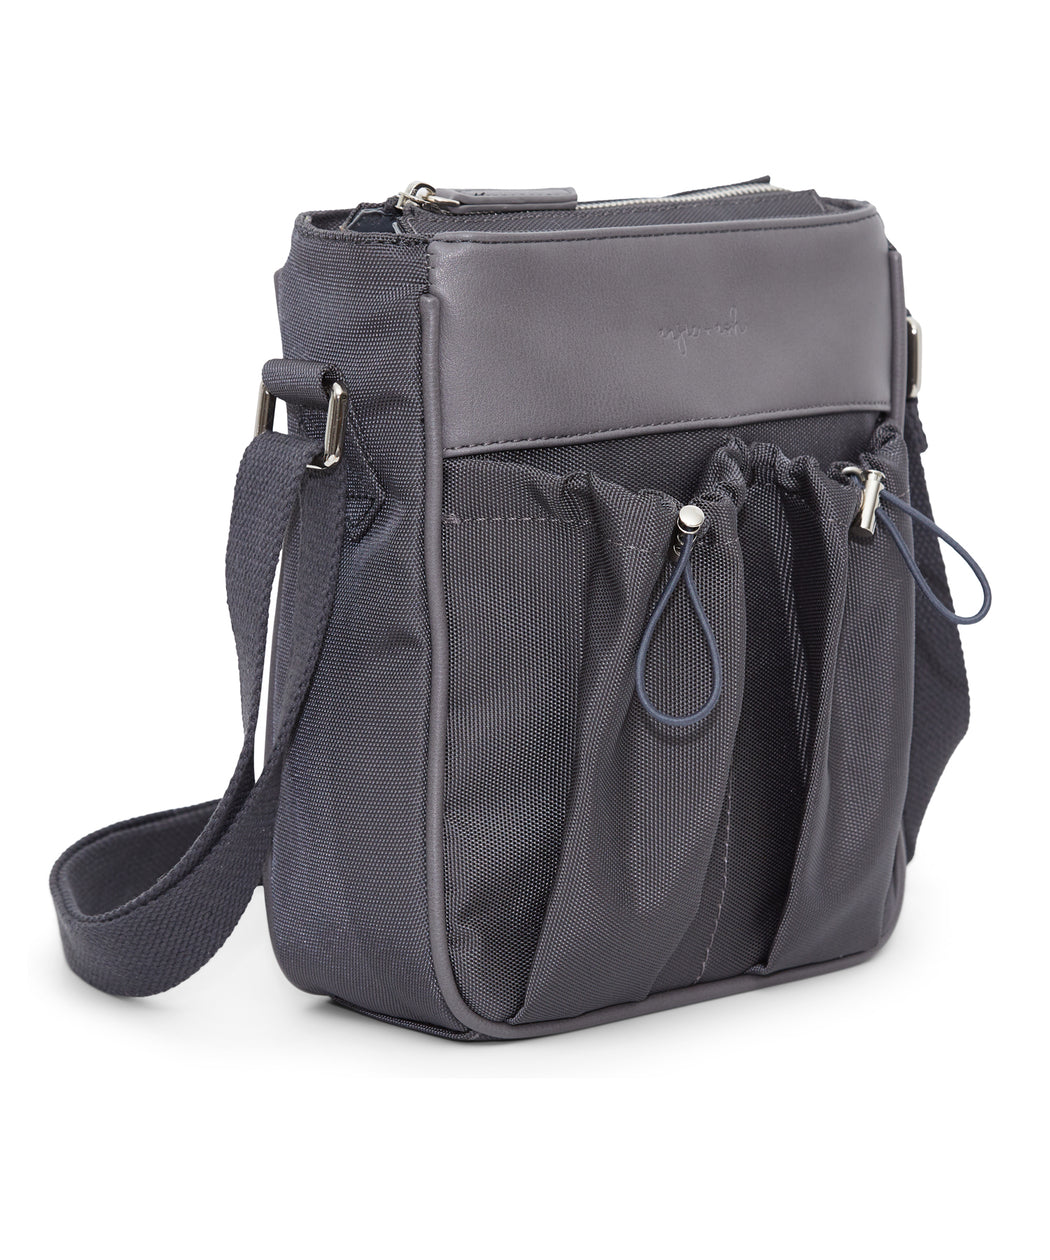 diaper bag crossbody in fog side